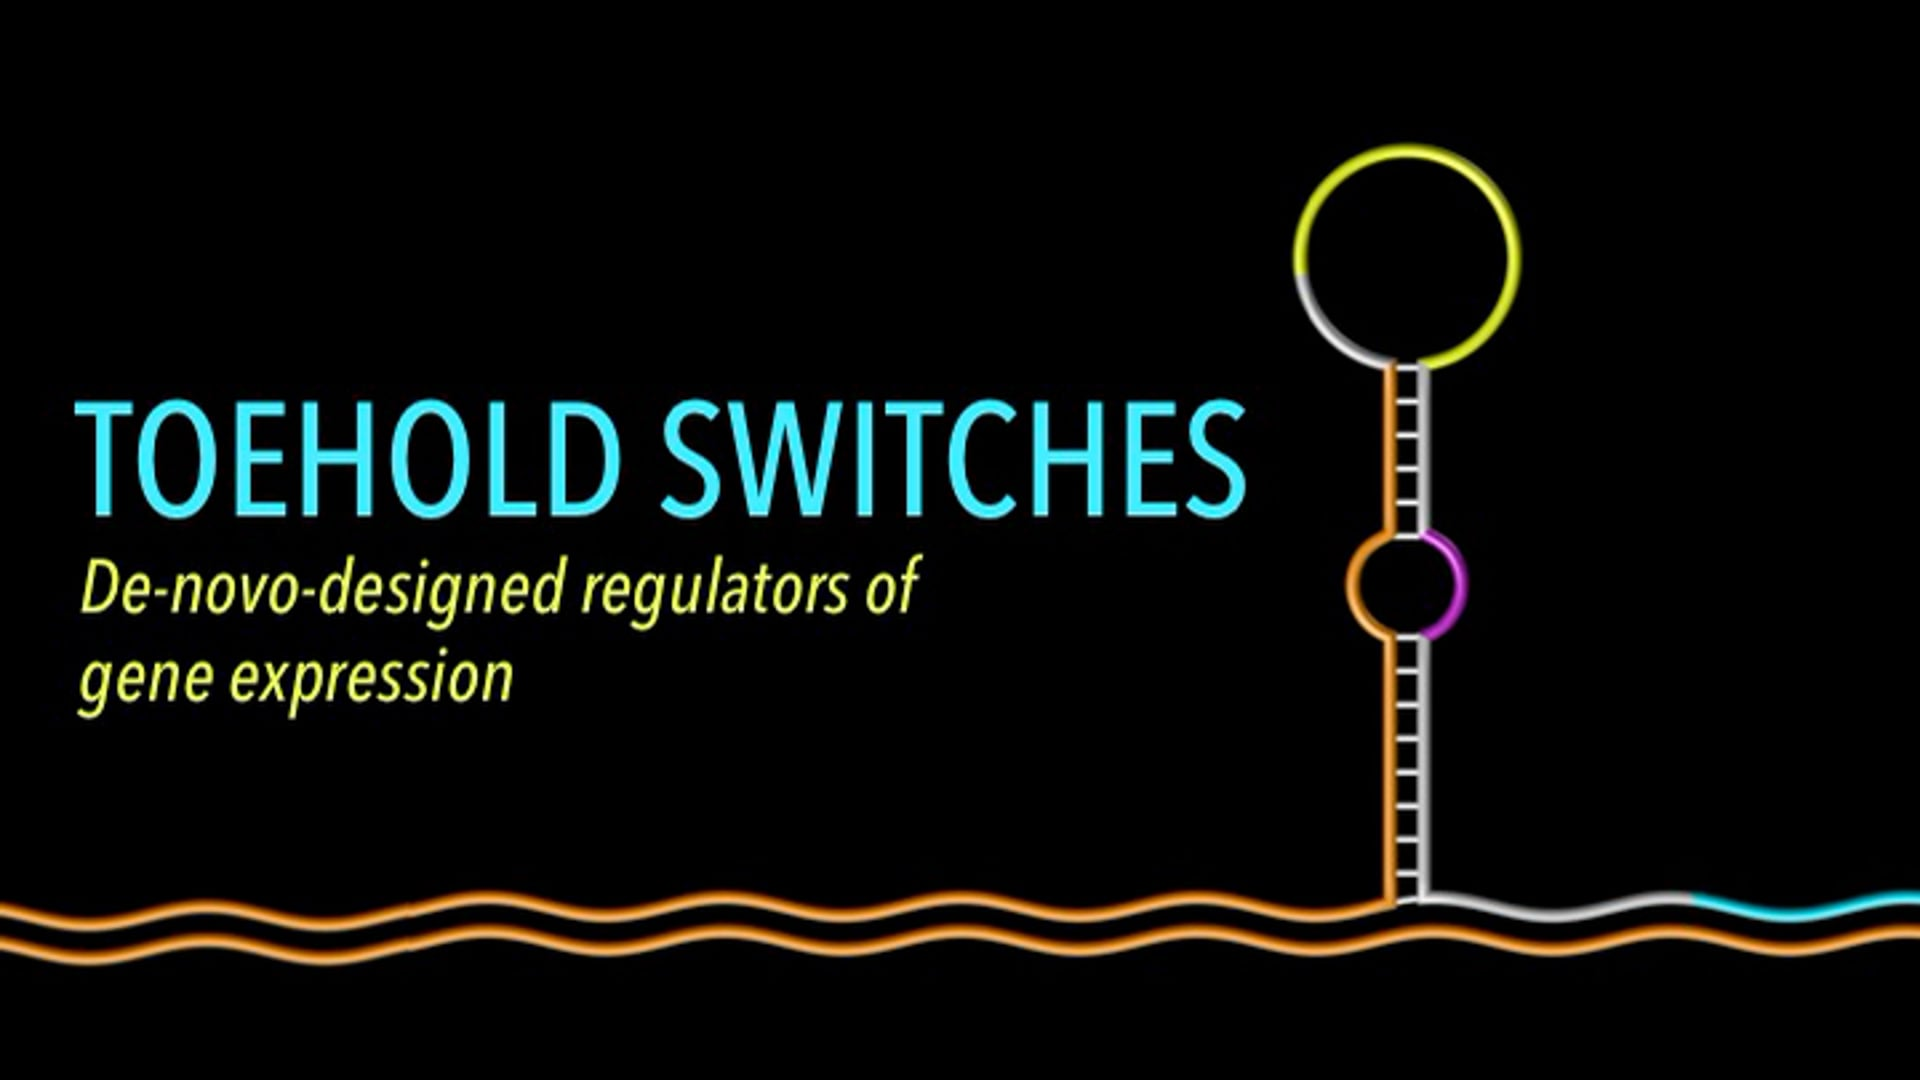 Toehold Switches